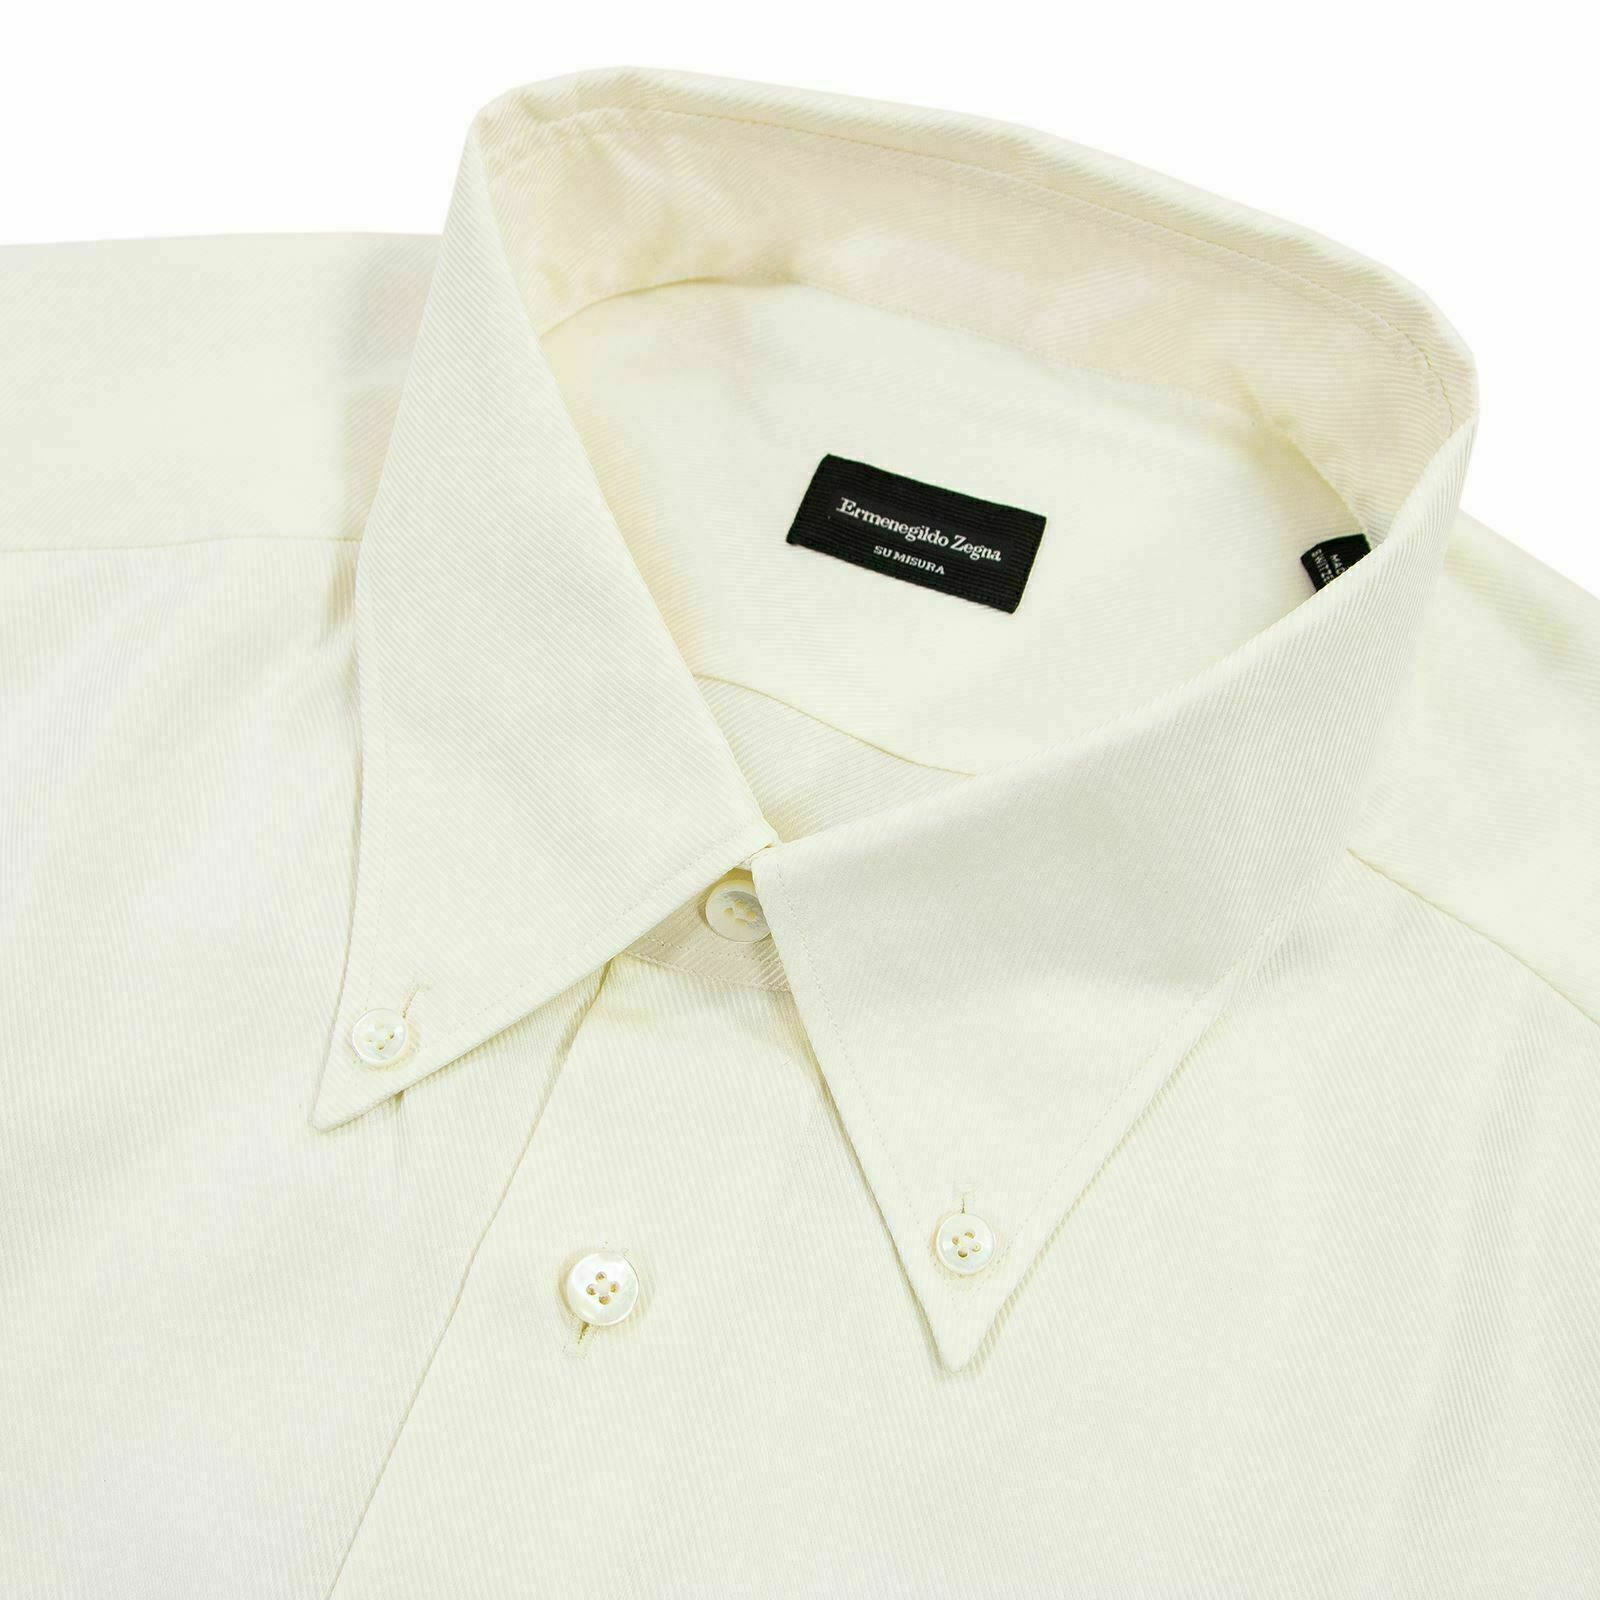 NWOT Zegna Su Misura Cream baumwolle Twill MOP Button Down Dress hemd 18US